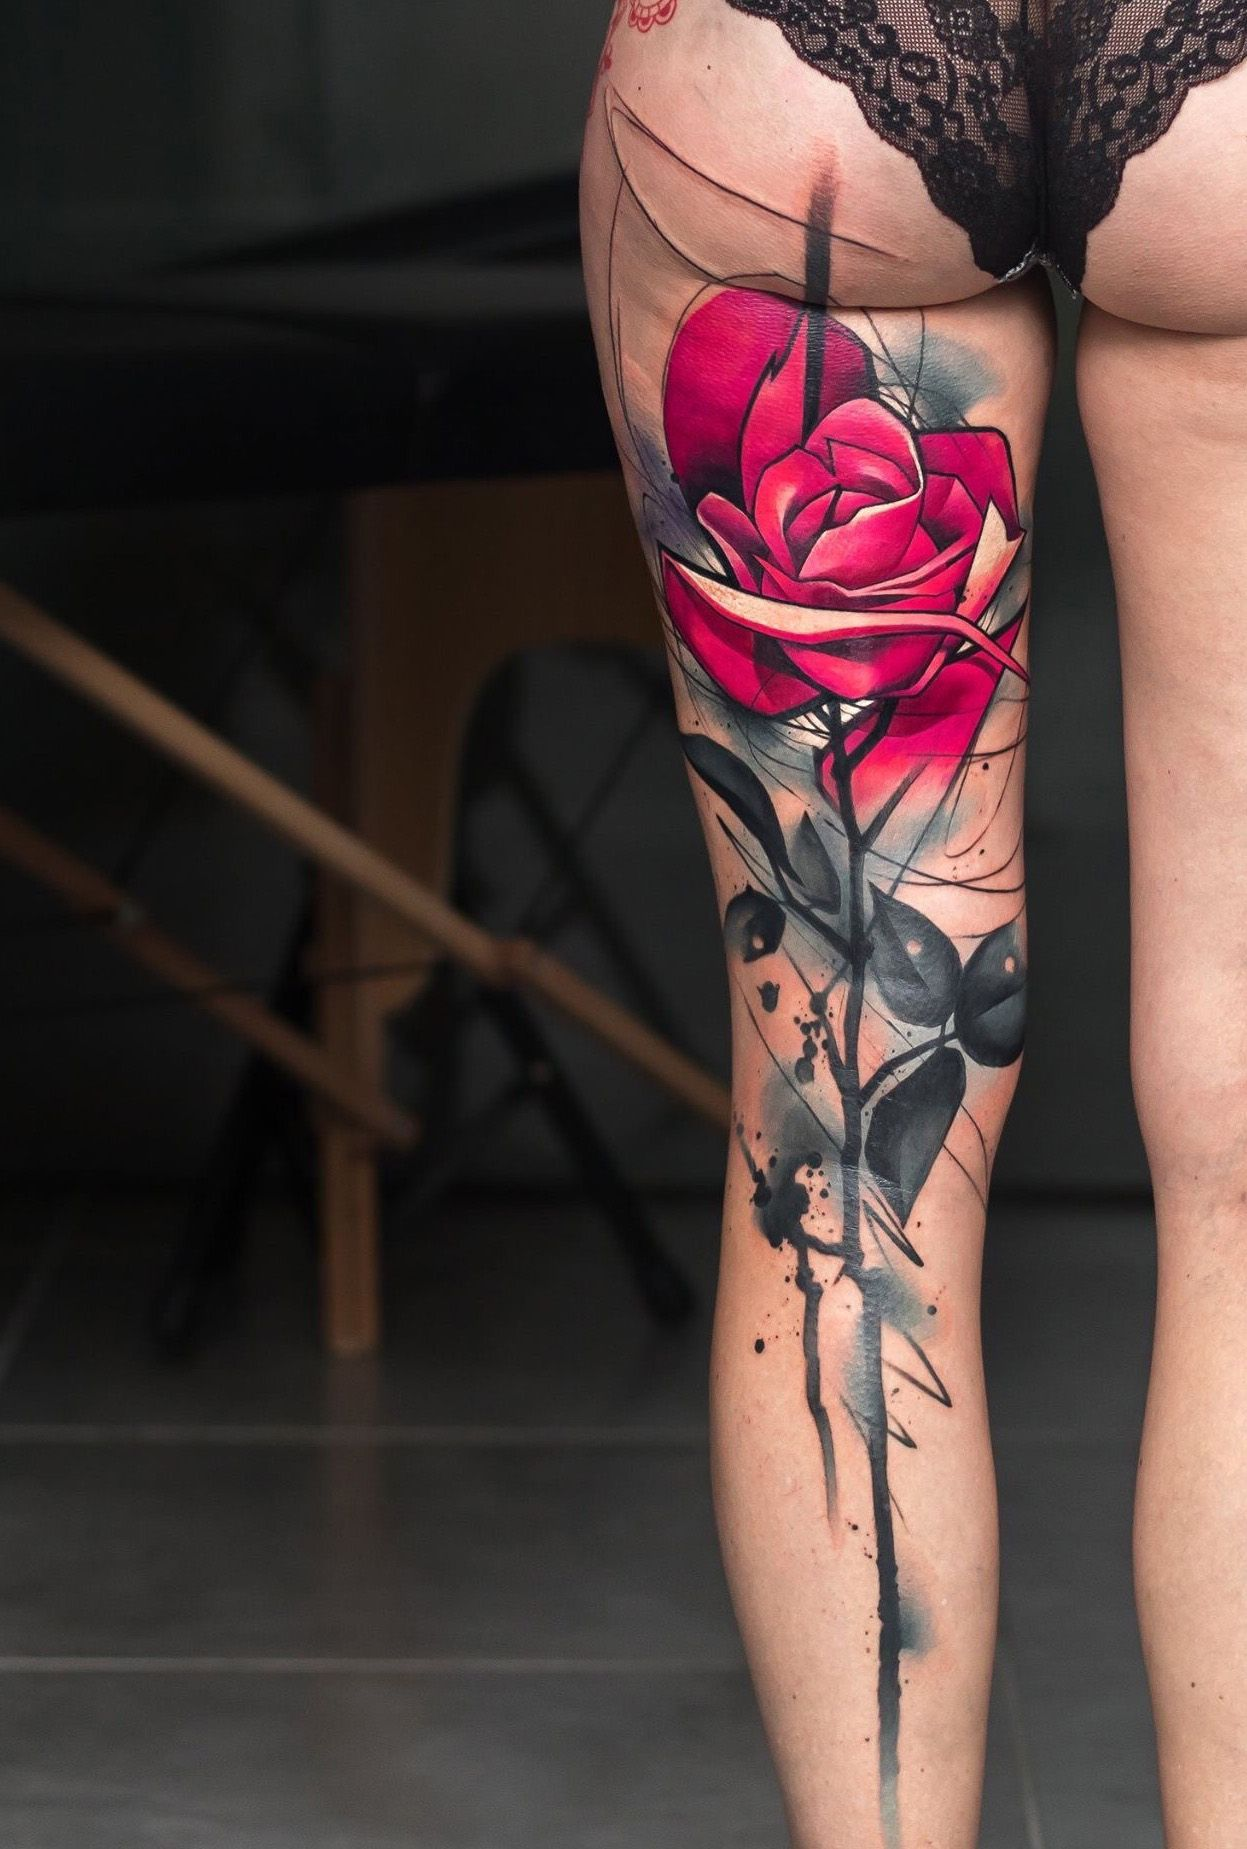 Rose tattoo #evamigtattoos #tattoo #uniquetattooideas | tatoo ...